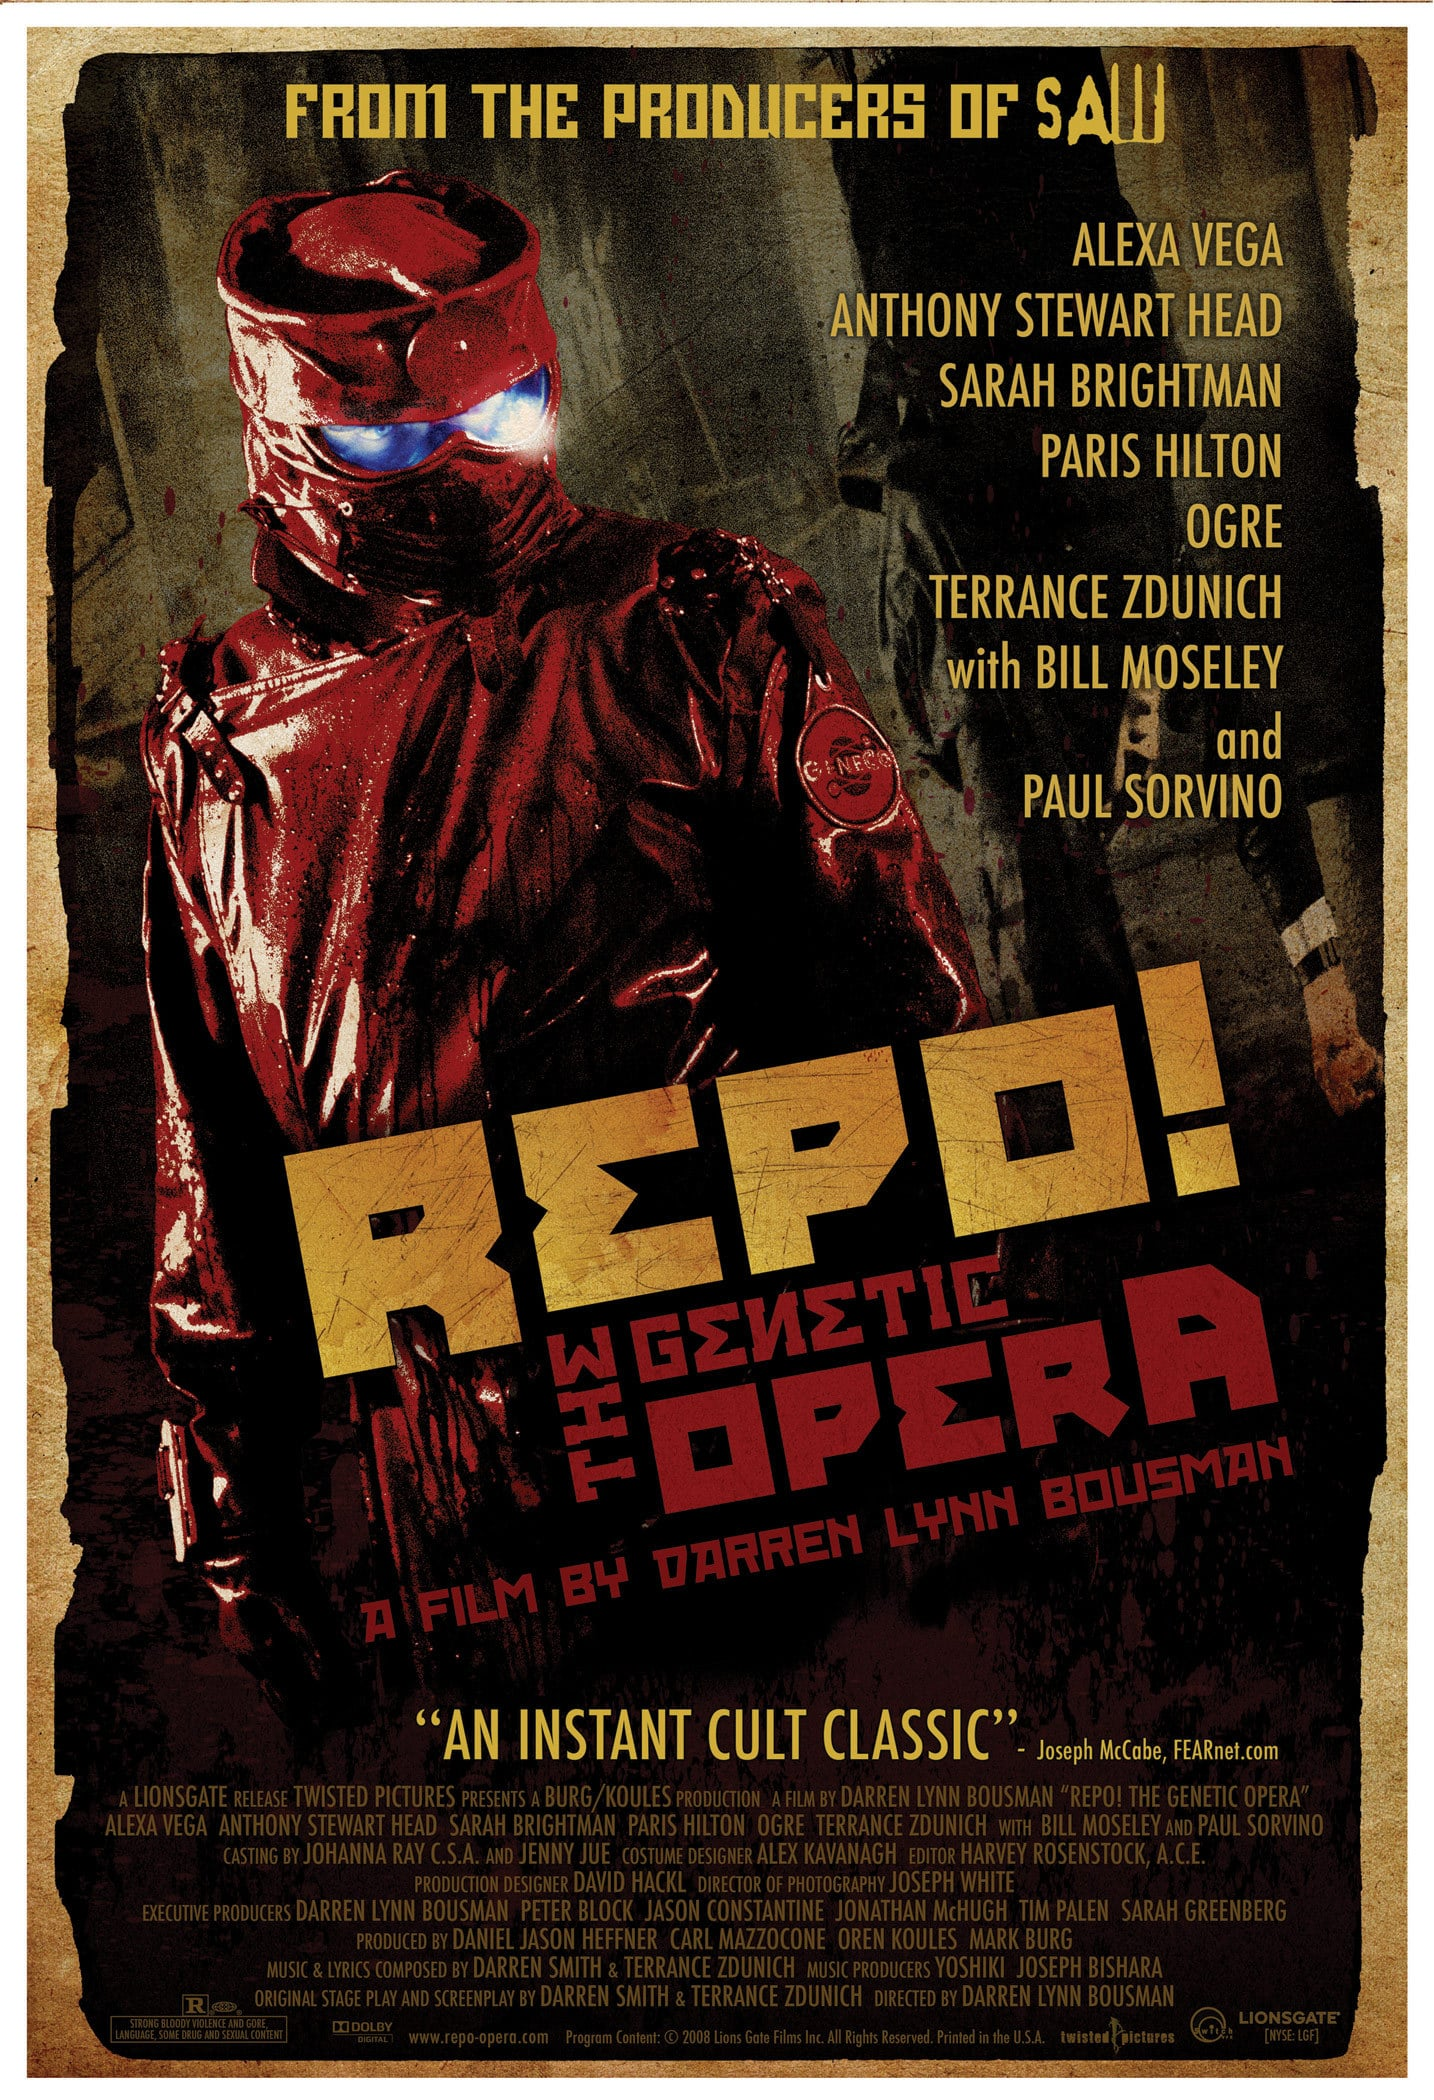 Poster for Repo! The Genetic Opera